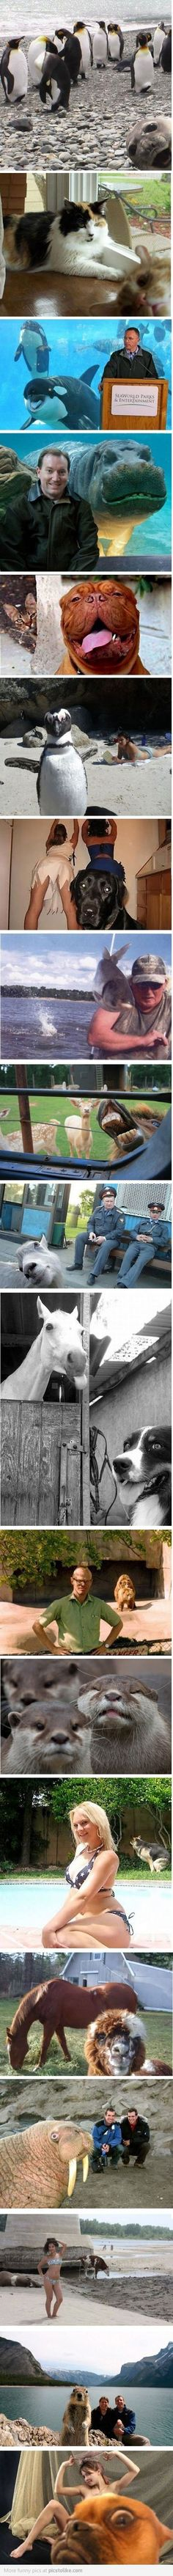 photoboming animals ahahah x'D these are actually pretty funny!